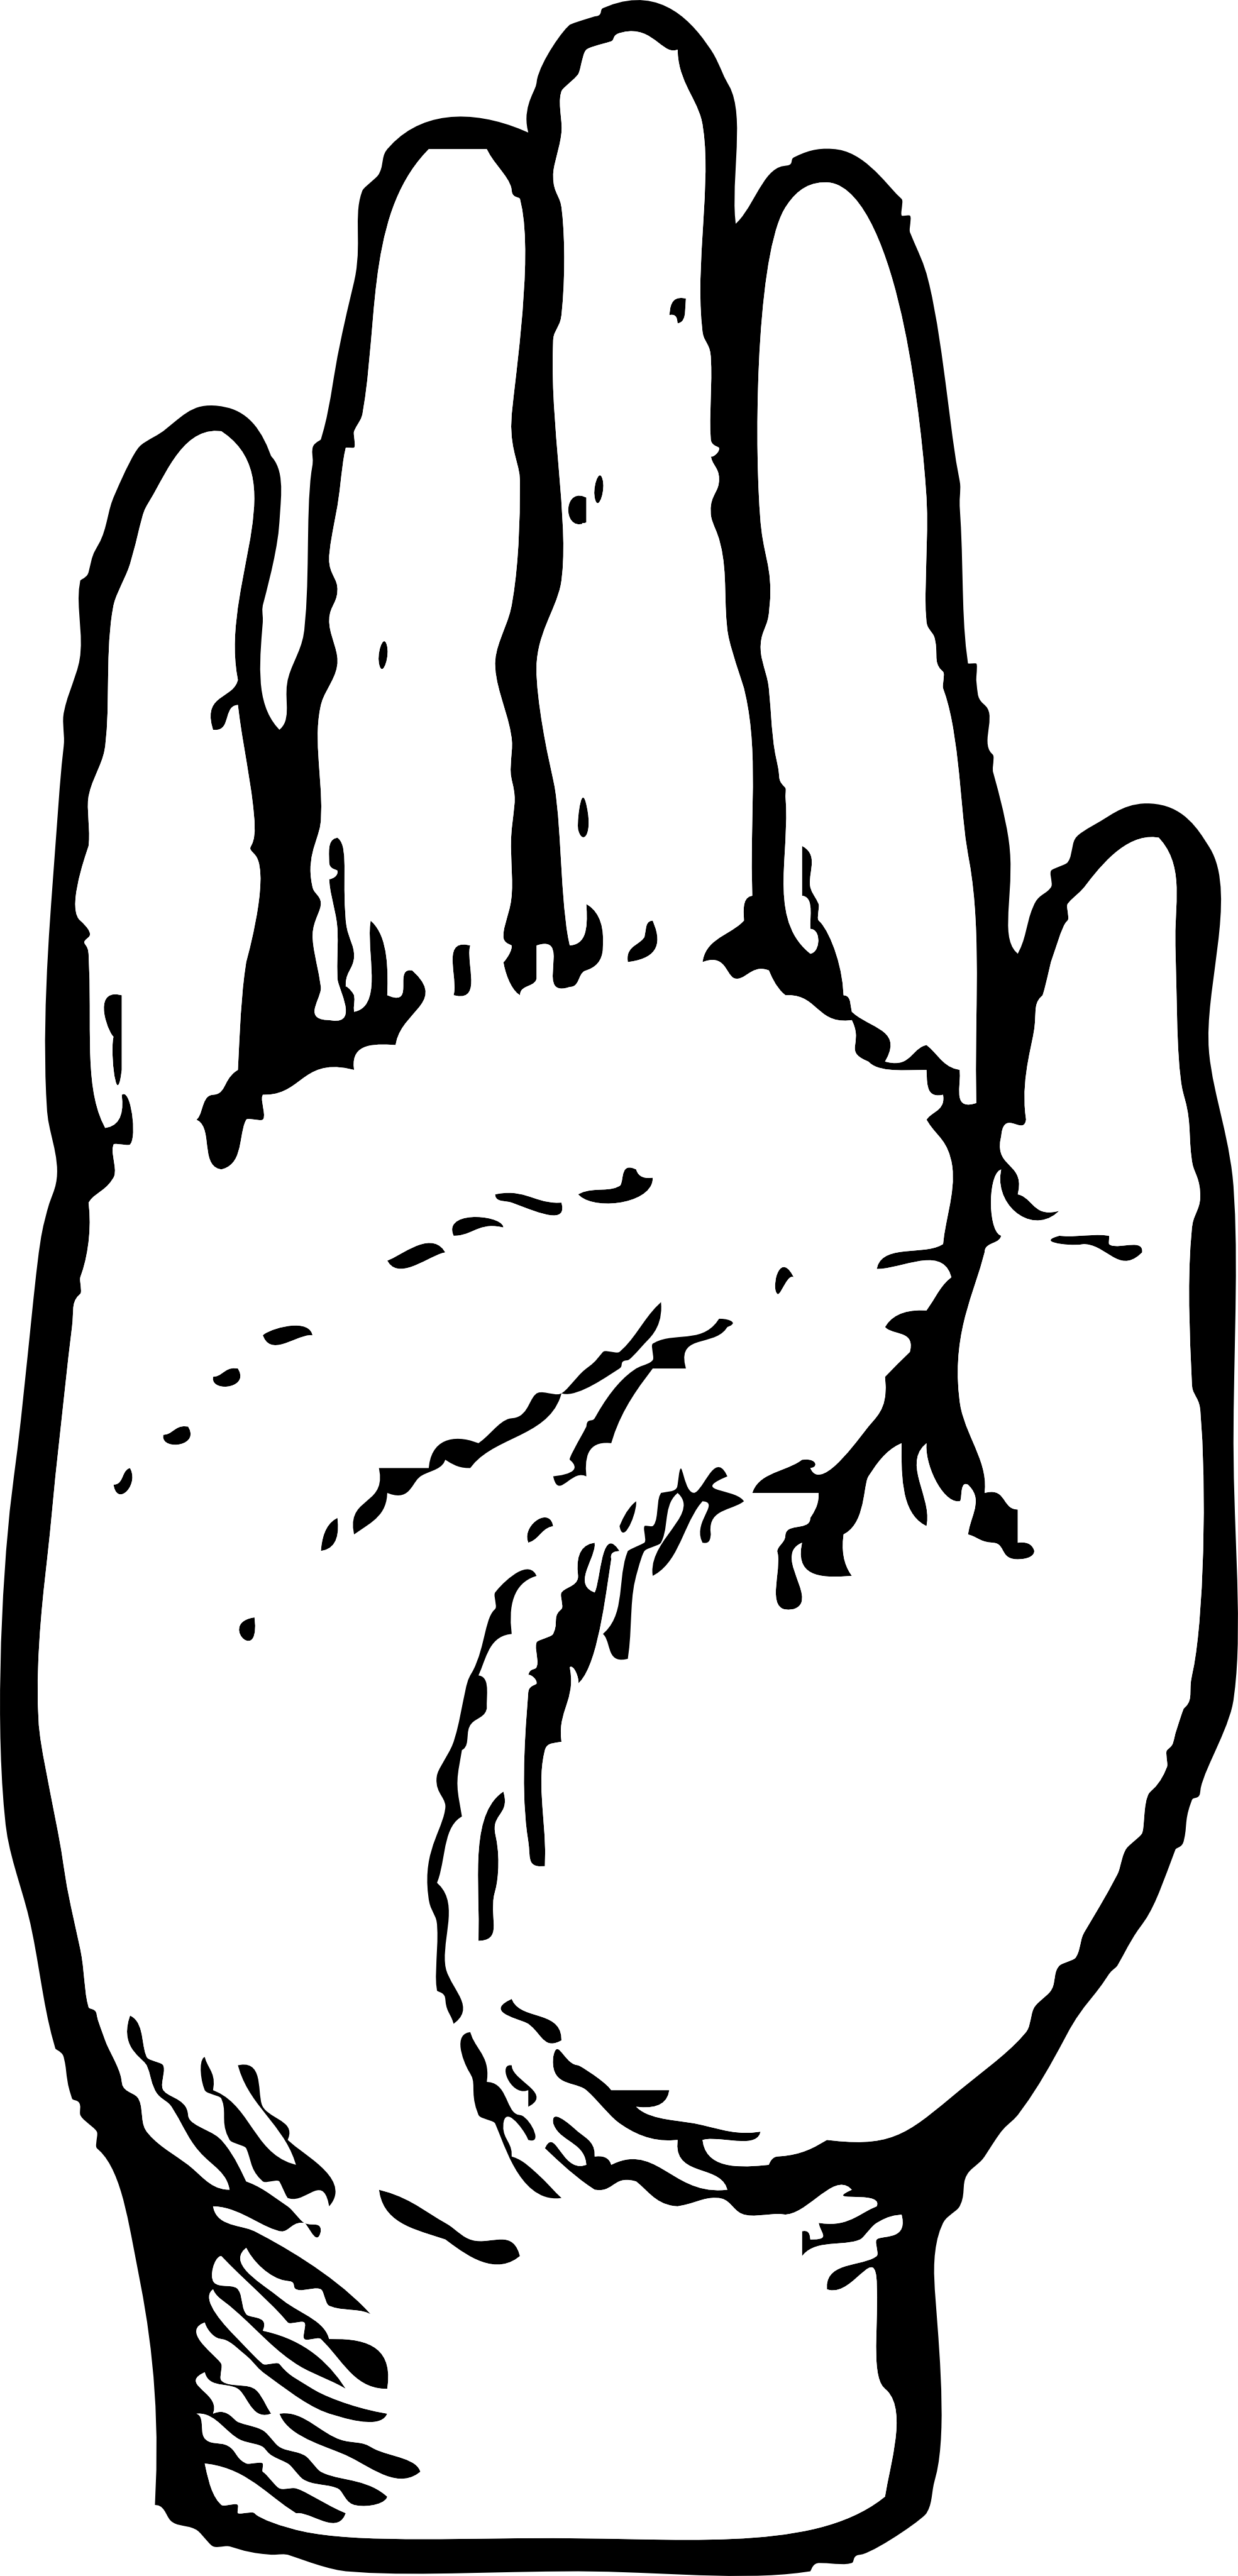 1969x4098 Hand Black And White Black And White Hand Clipart 2